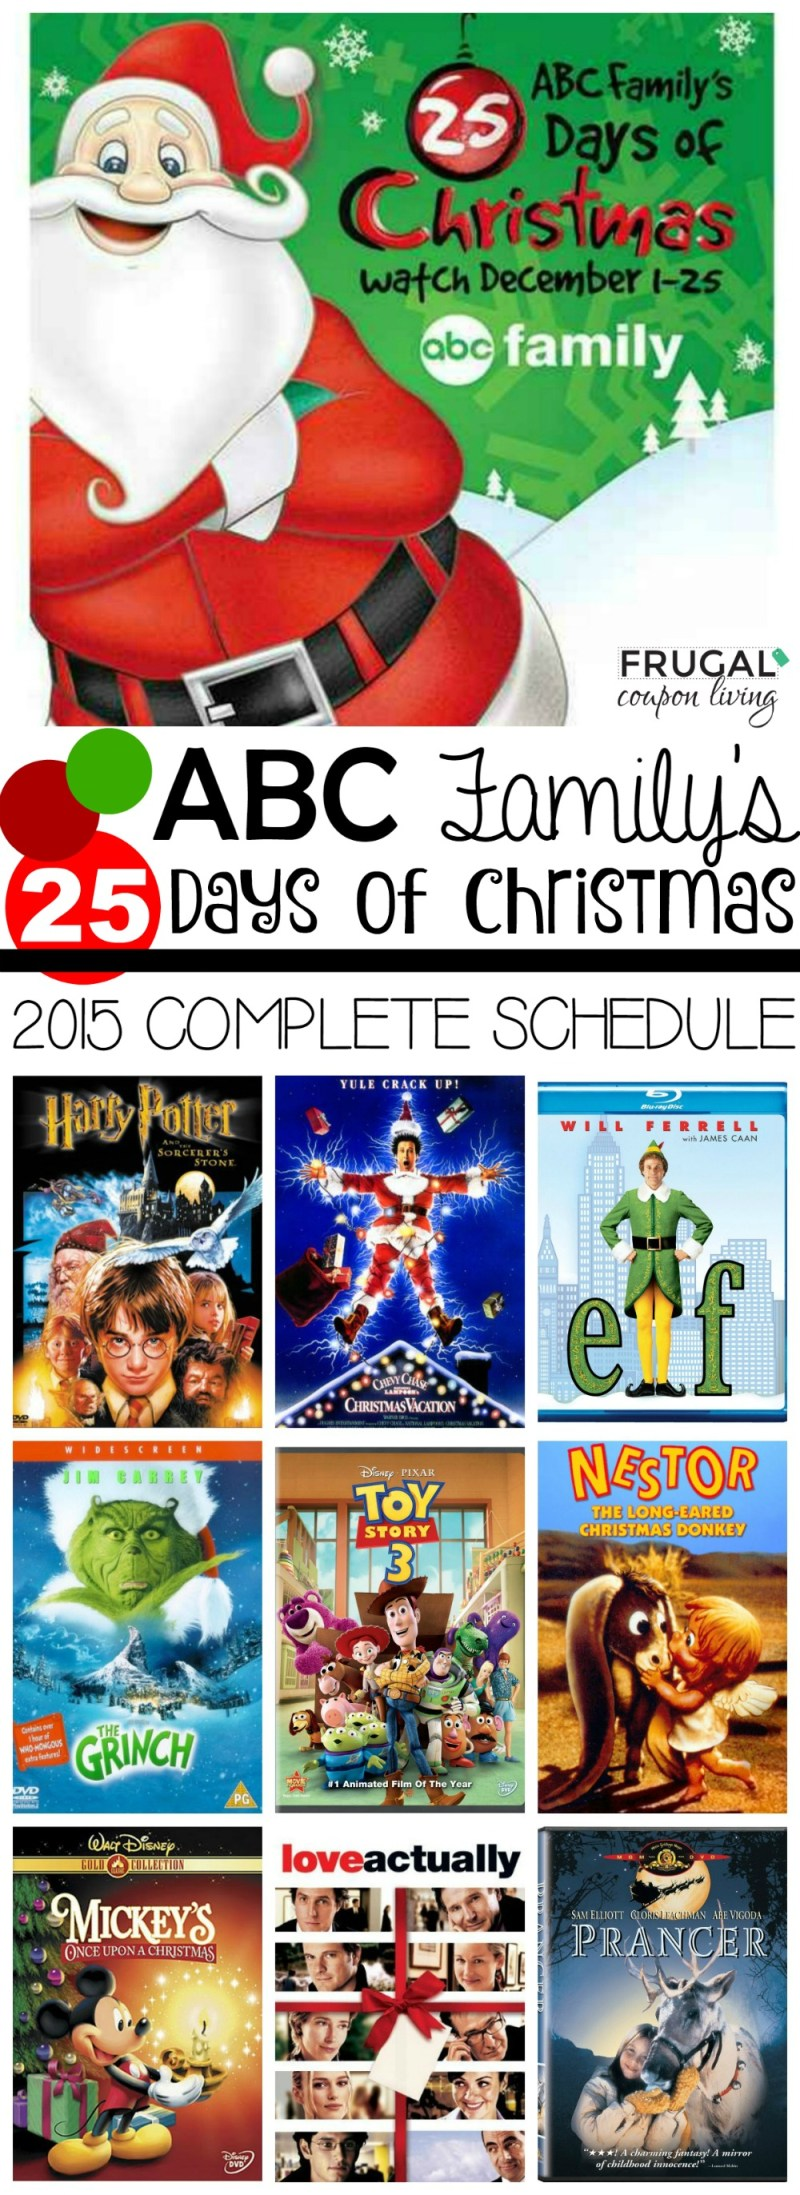 abc family 25 days of christmas 2017 schedule